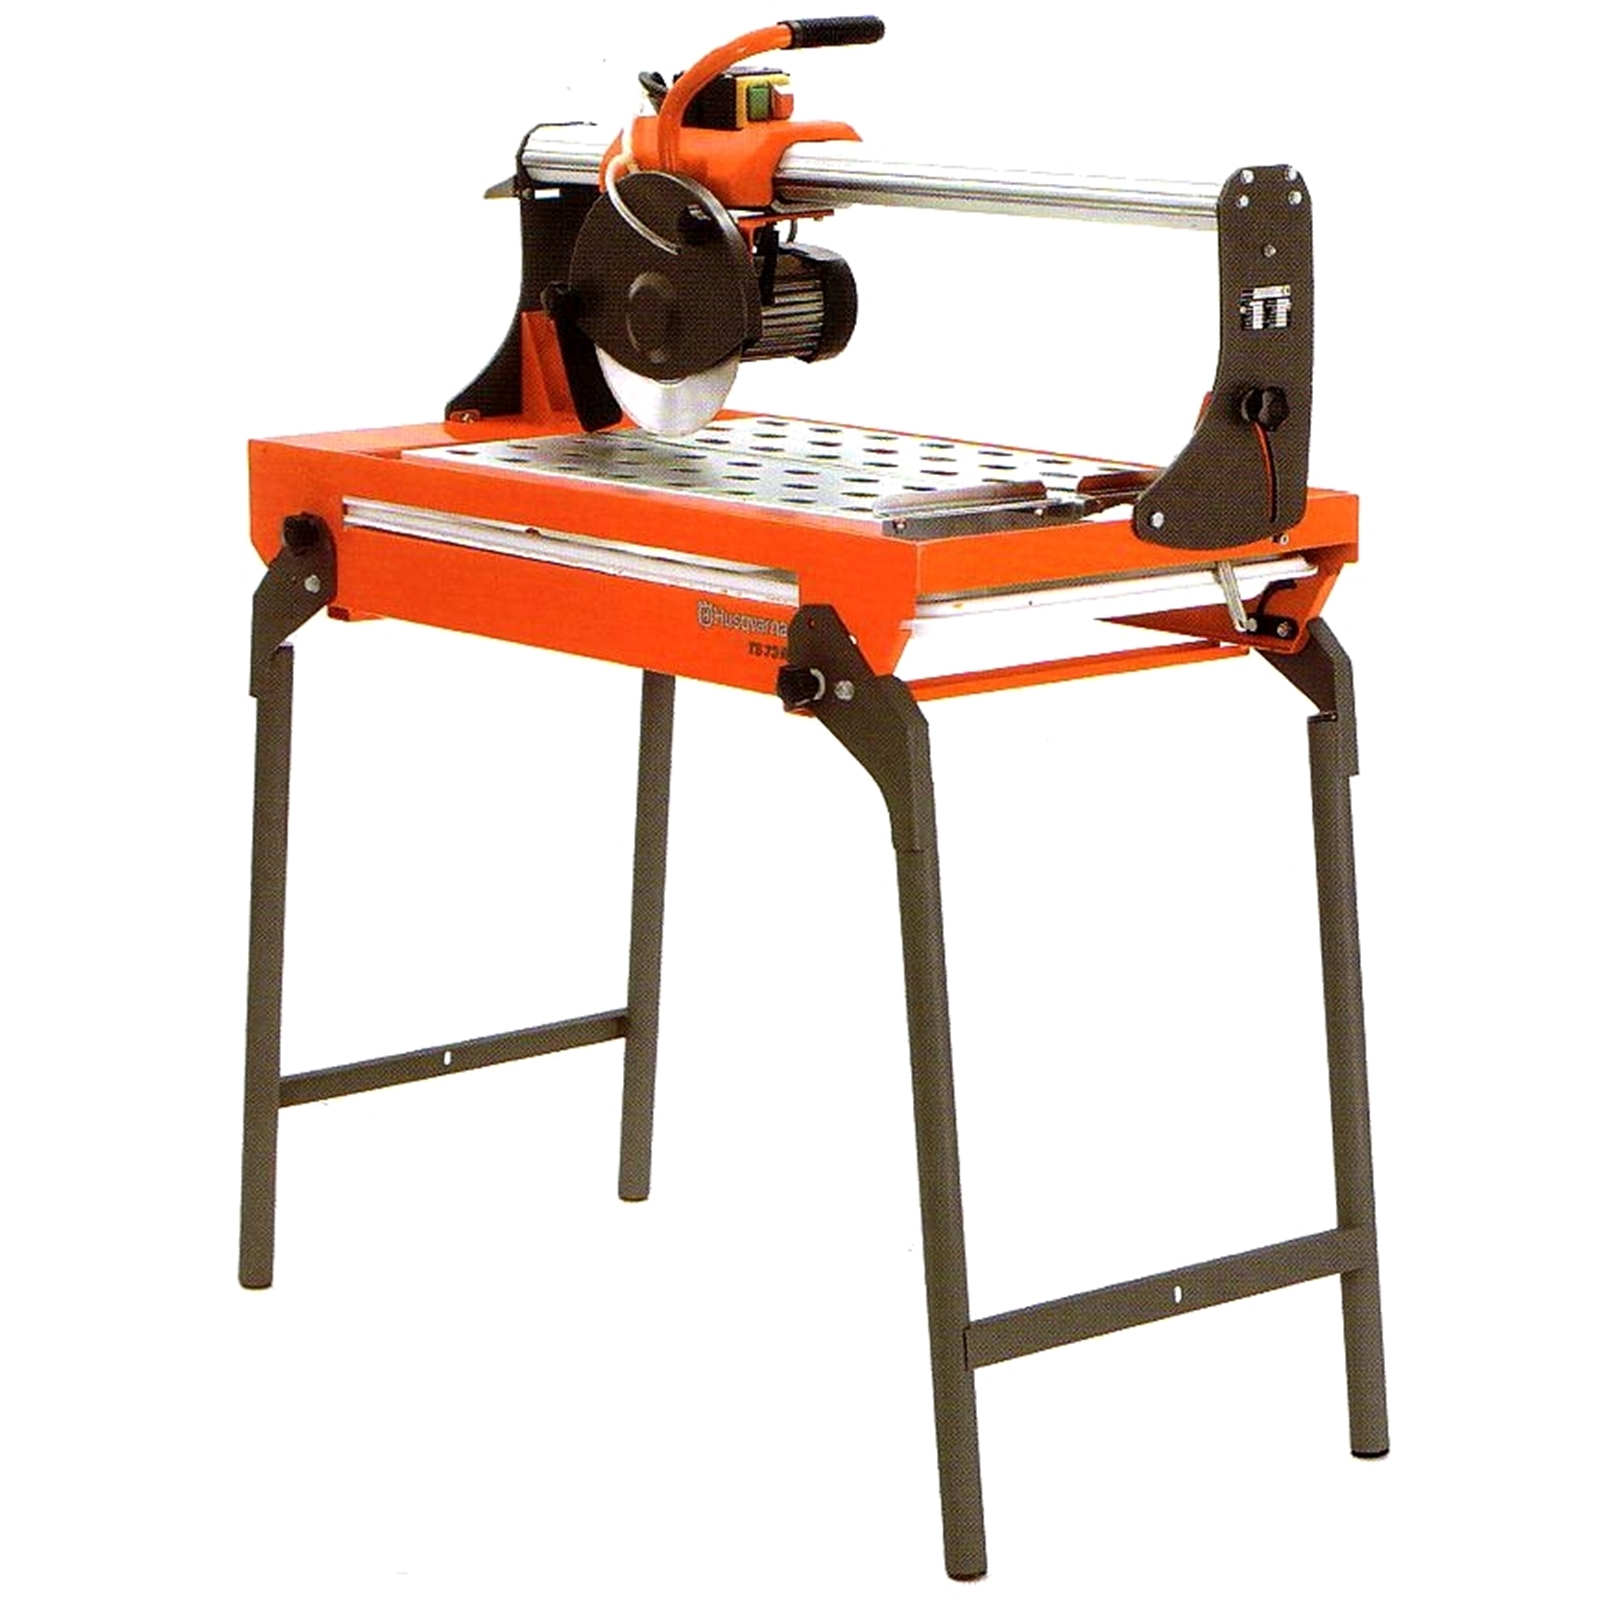 For Hire: Electric Tile Saw Table